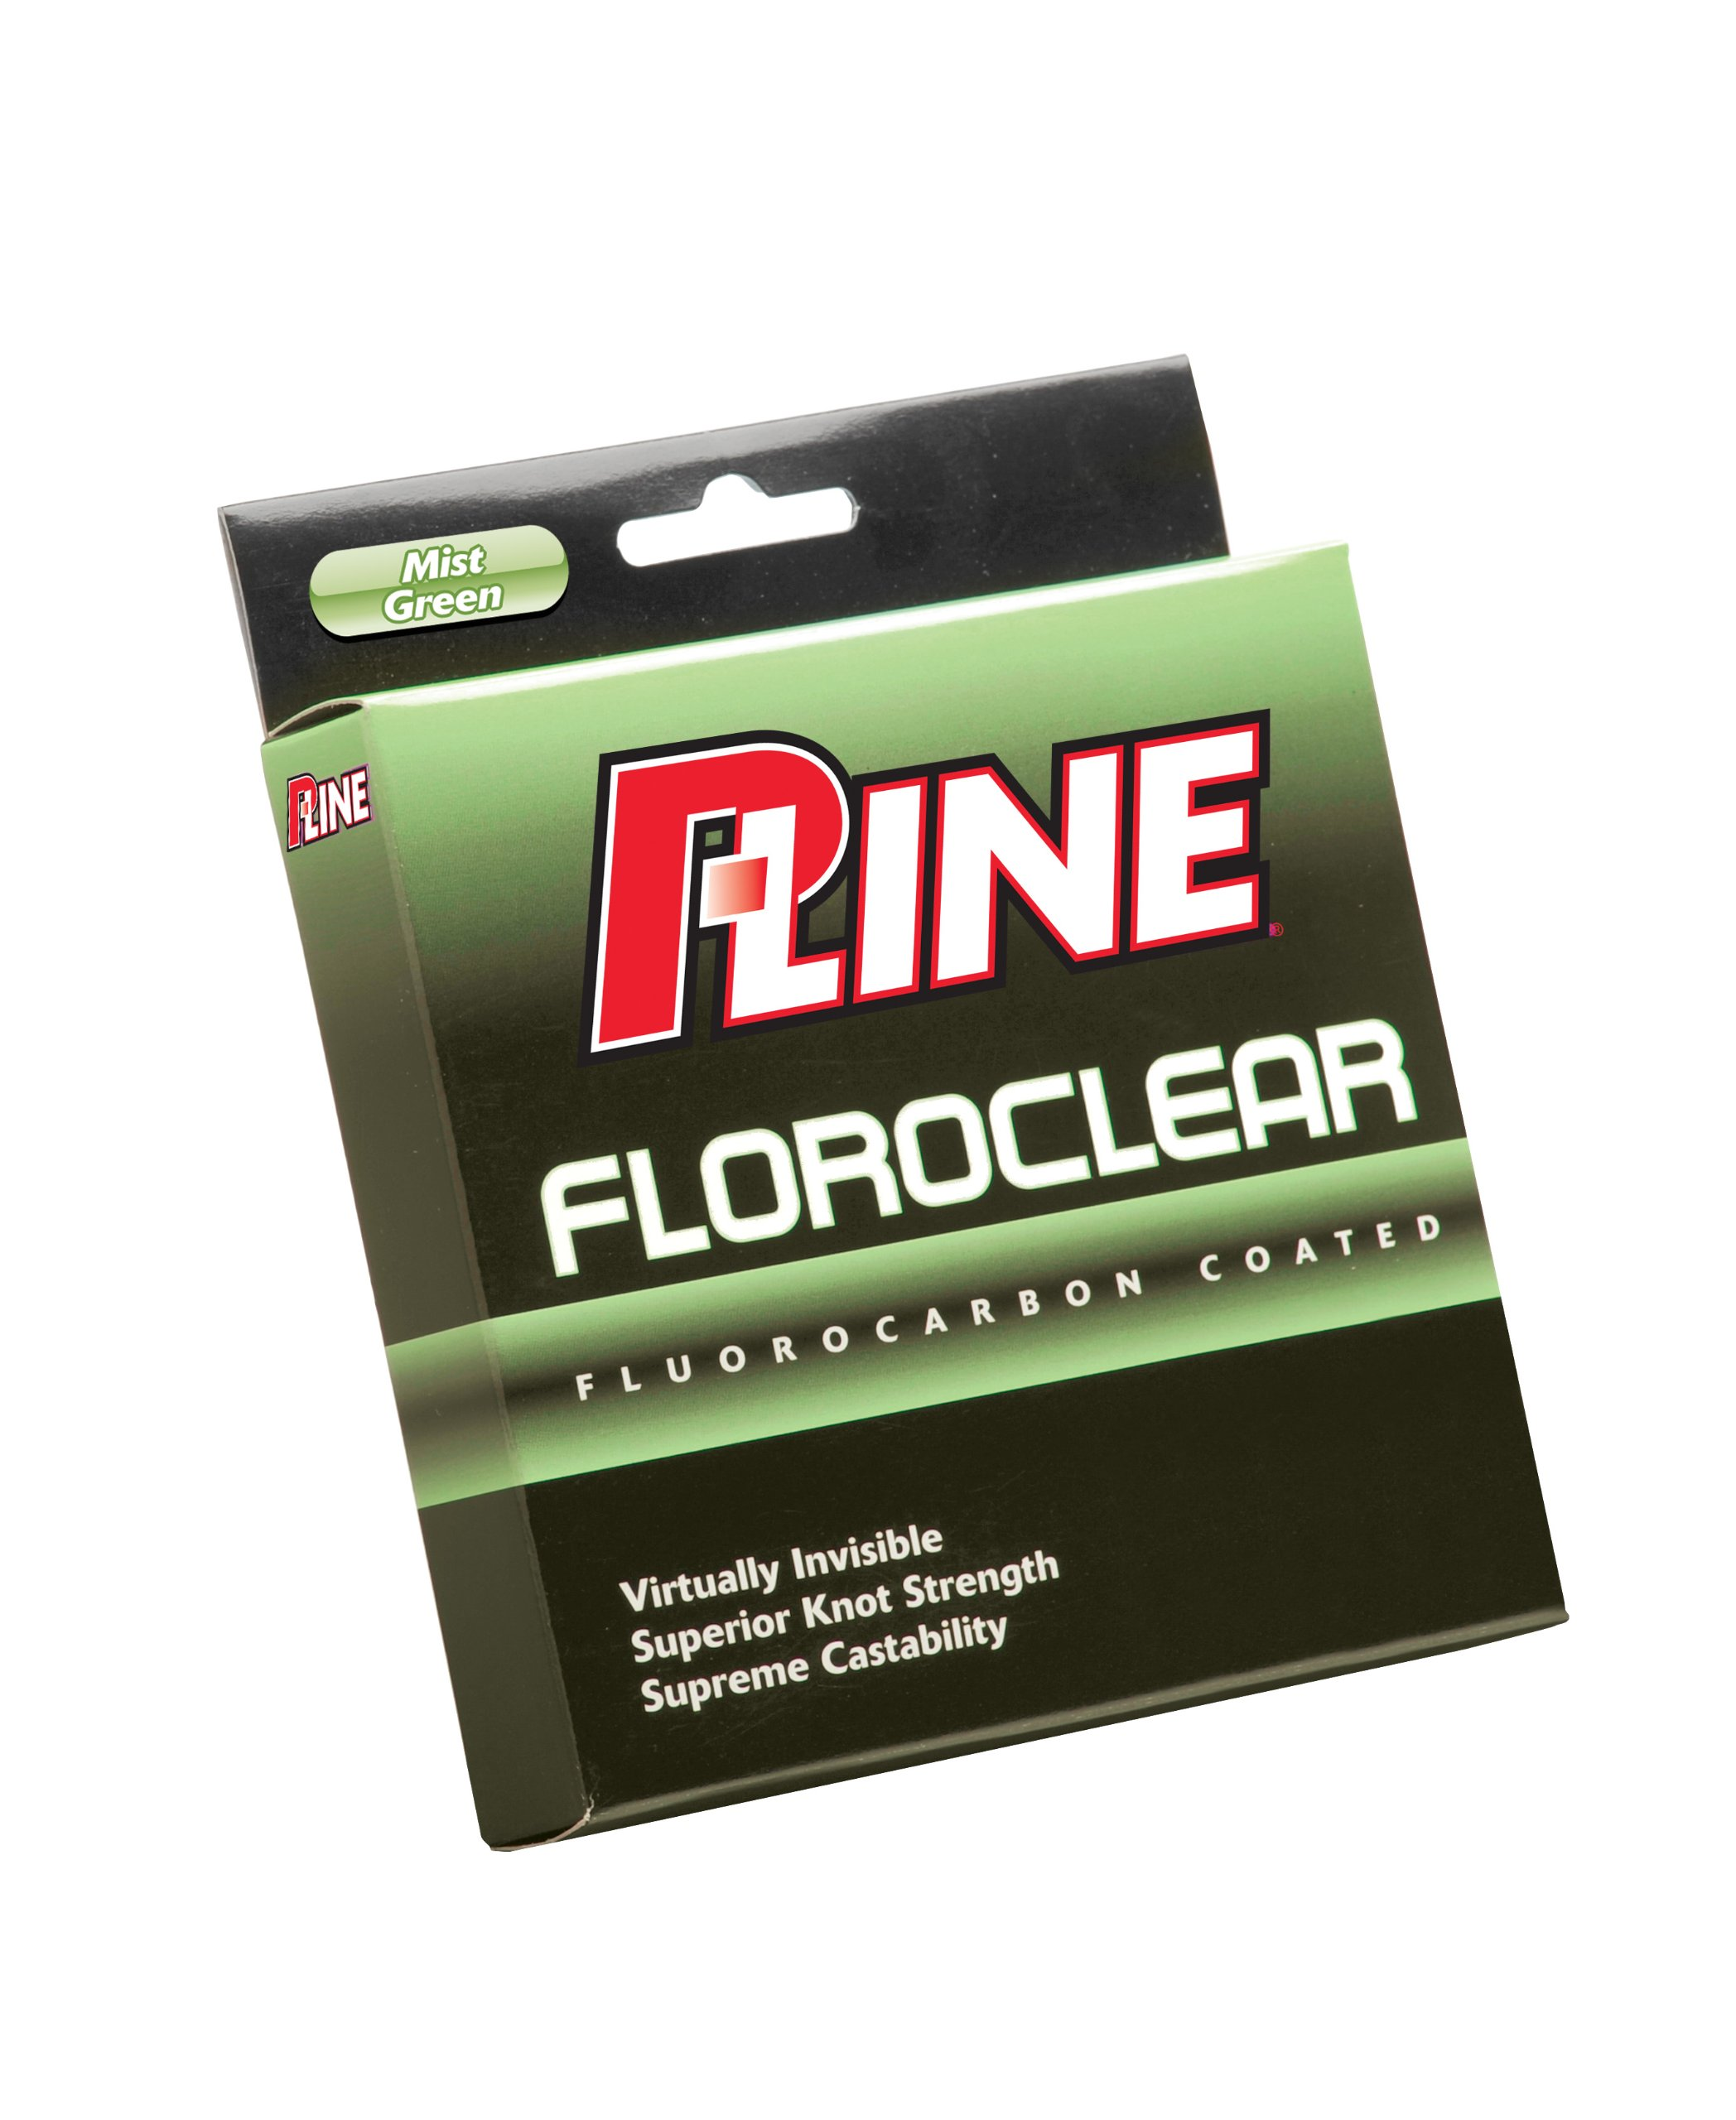 P-Line Floroclear 300-Yard Filler Fishing Line ( 6-Pound, Mist Green) by P-Line